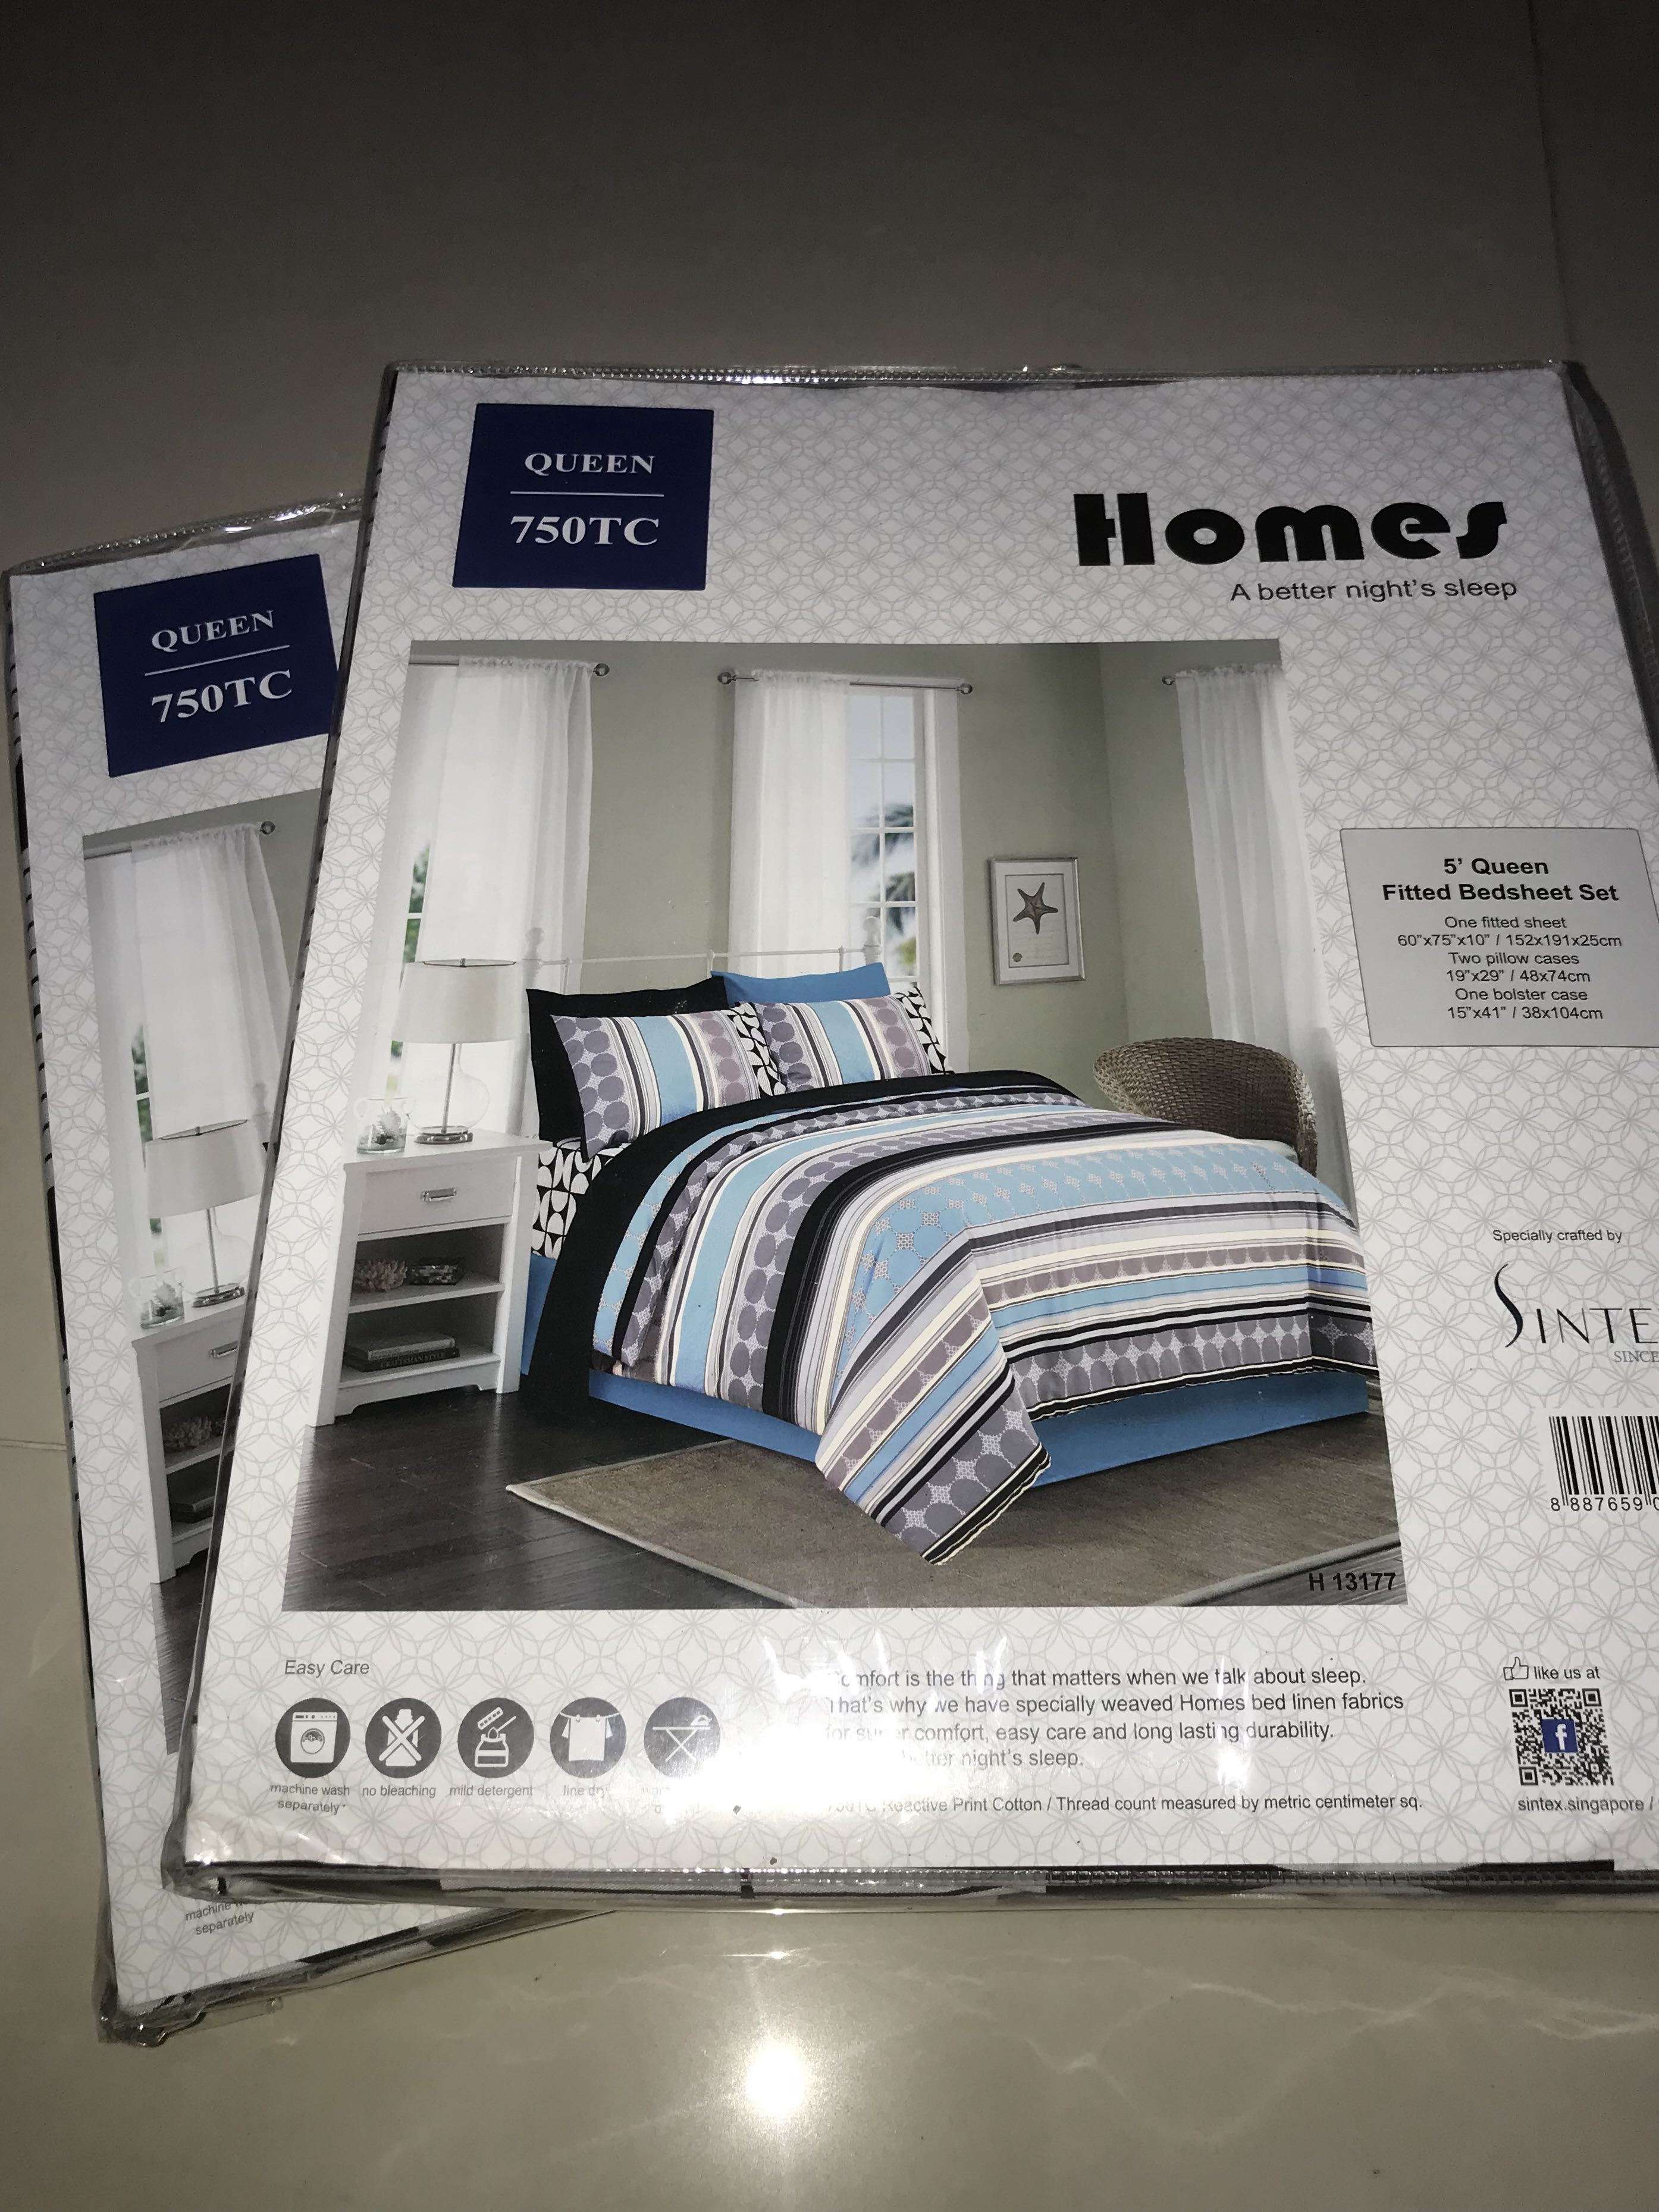 X2 Sintec Queen Size Fitted Bed Sheet 750 Tc Furniture Home Decor